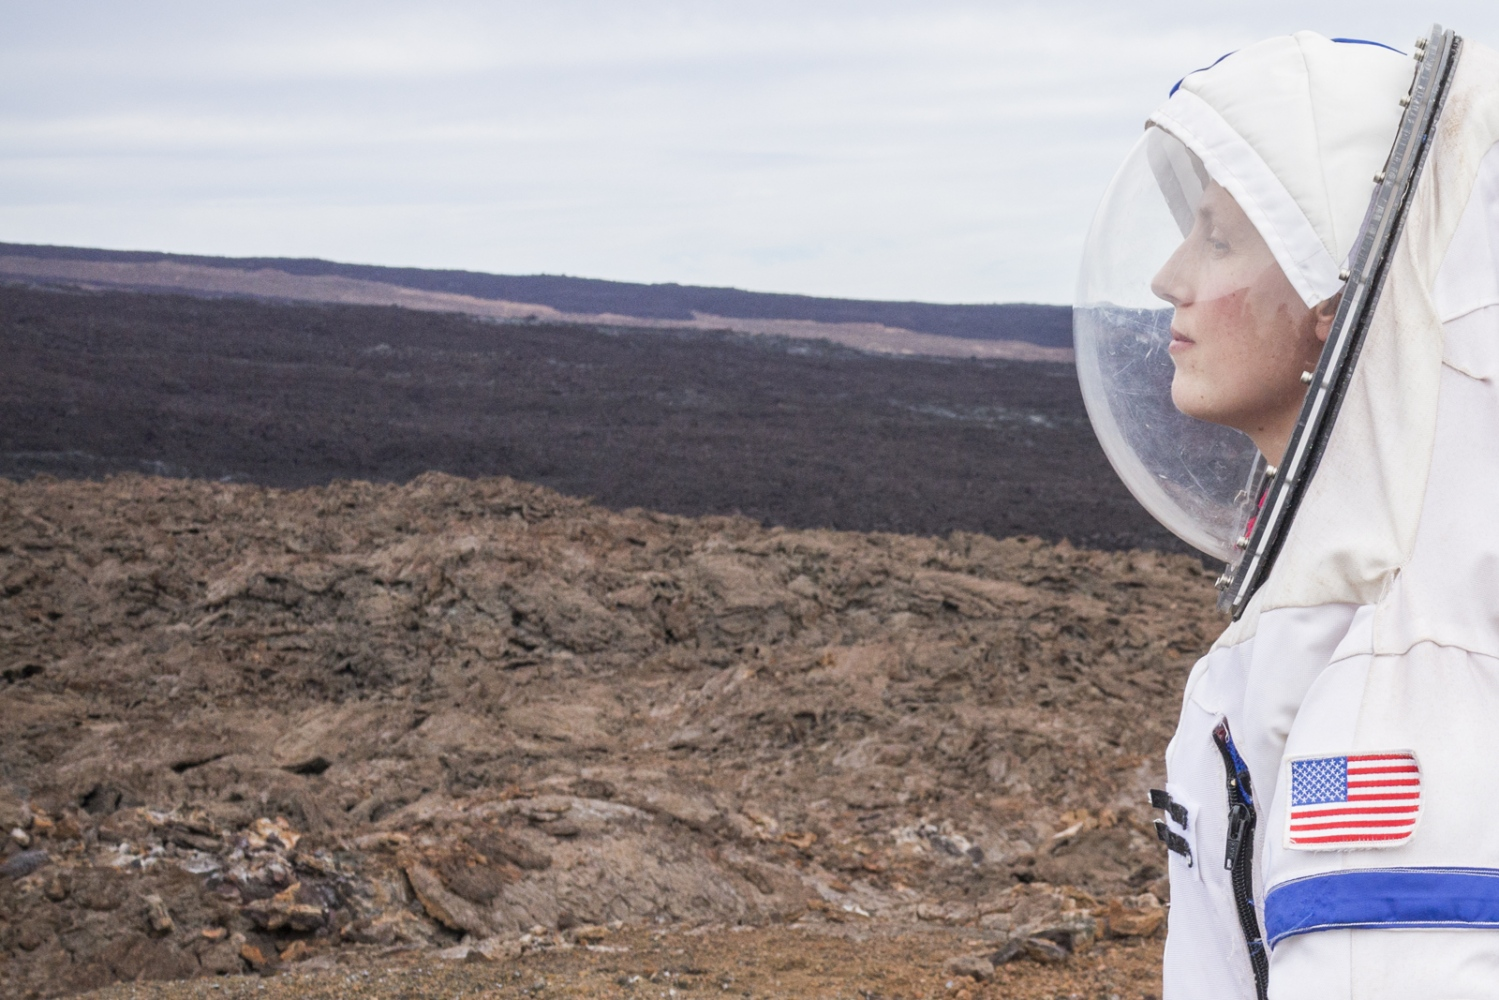 Martha Lenio, commander of the NASA human performance study Hawaii Space Exploration Analog and Simulation (HI-SEAS), is photographed wearing a spacesuit outside of the dome where she spent eight months of confinement together with other five researchers in the crater of the volcano Mauna Loa, Hawaii, Big Island.